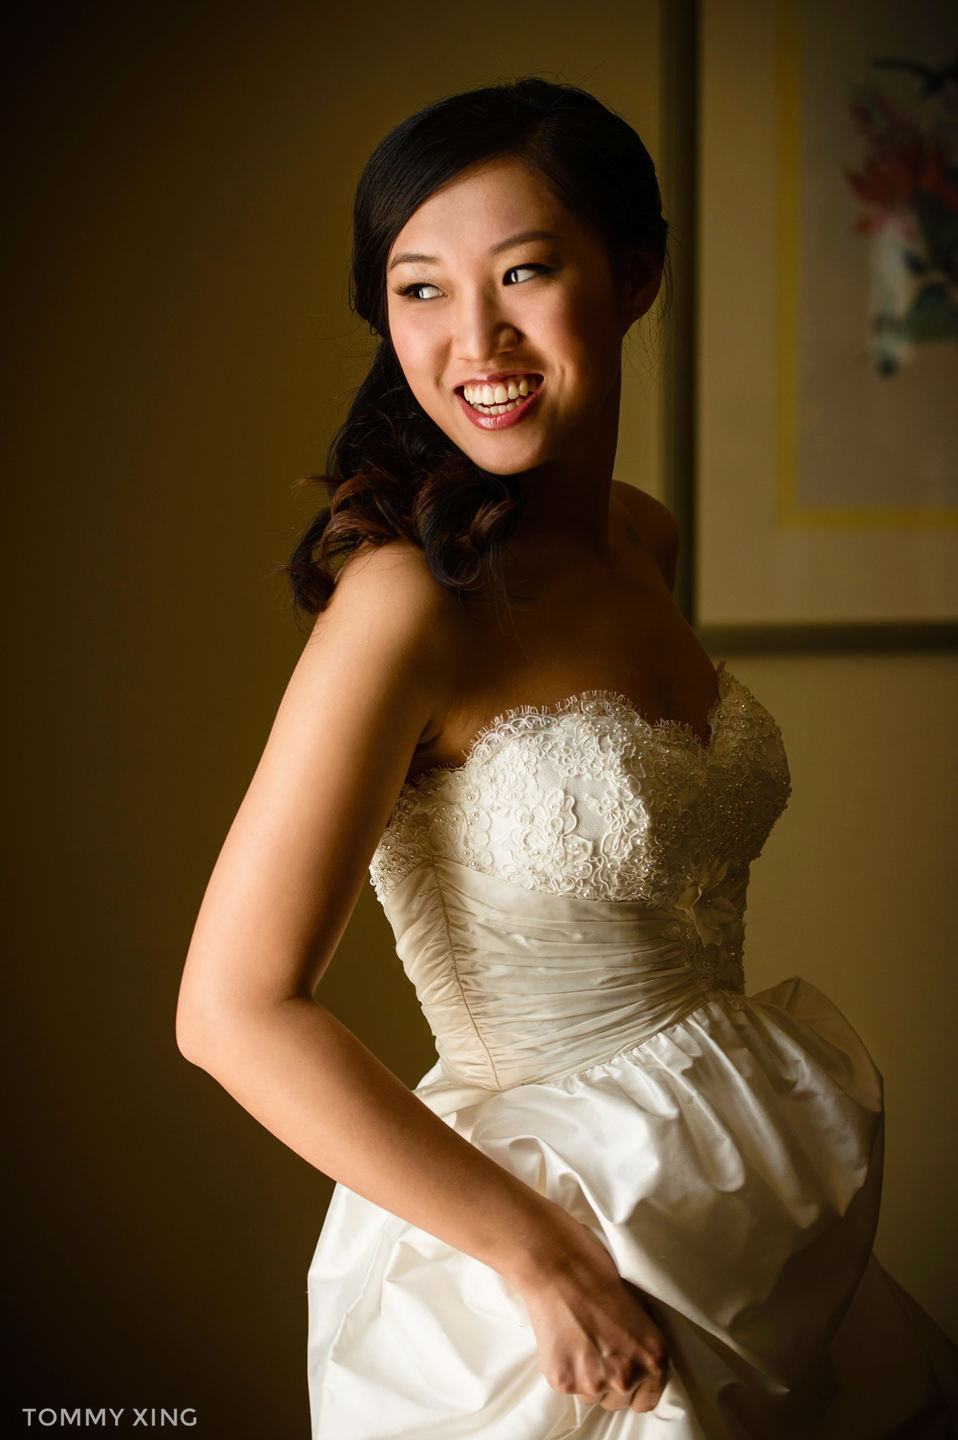 STANFORD MEMORIAL CHURCH WEDDING SAN FRANCISCO BAY AREA 斯坦福教堂婚礼 洛杉矶婚礼婚纱摄影师  Tommy Xing 22.jpg